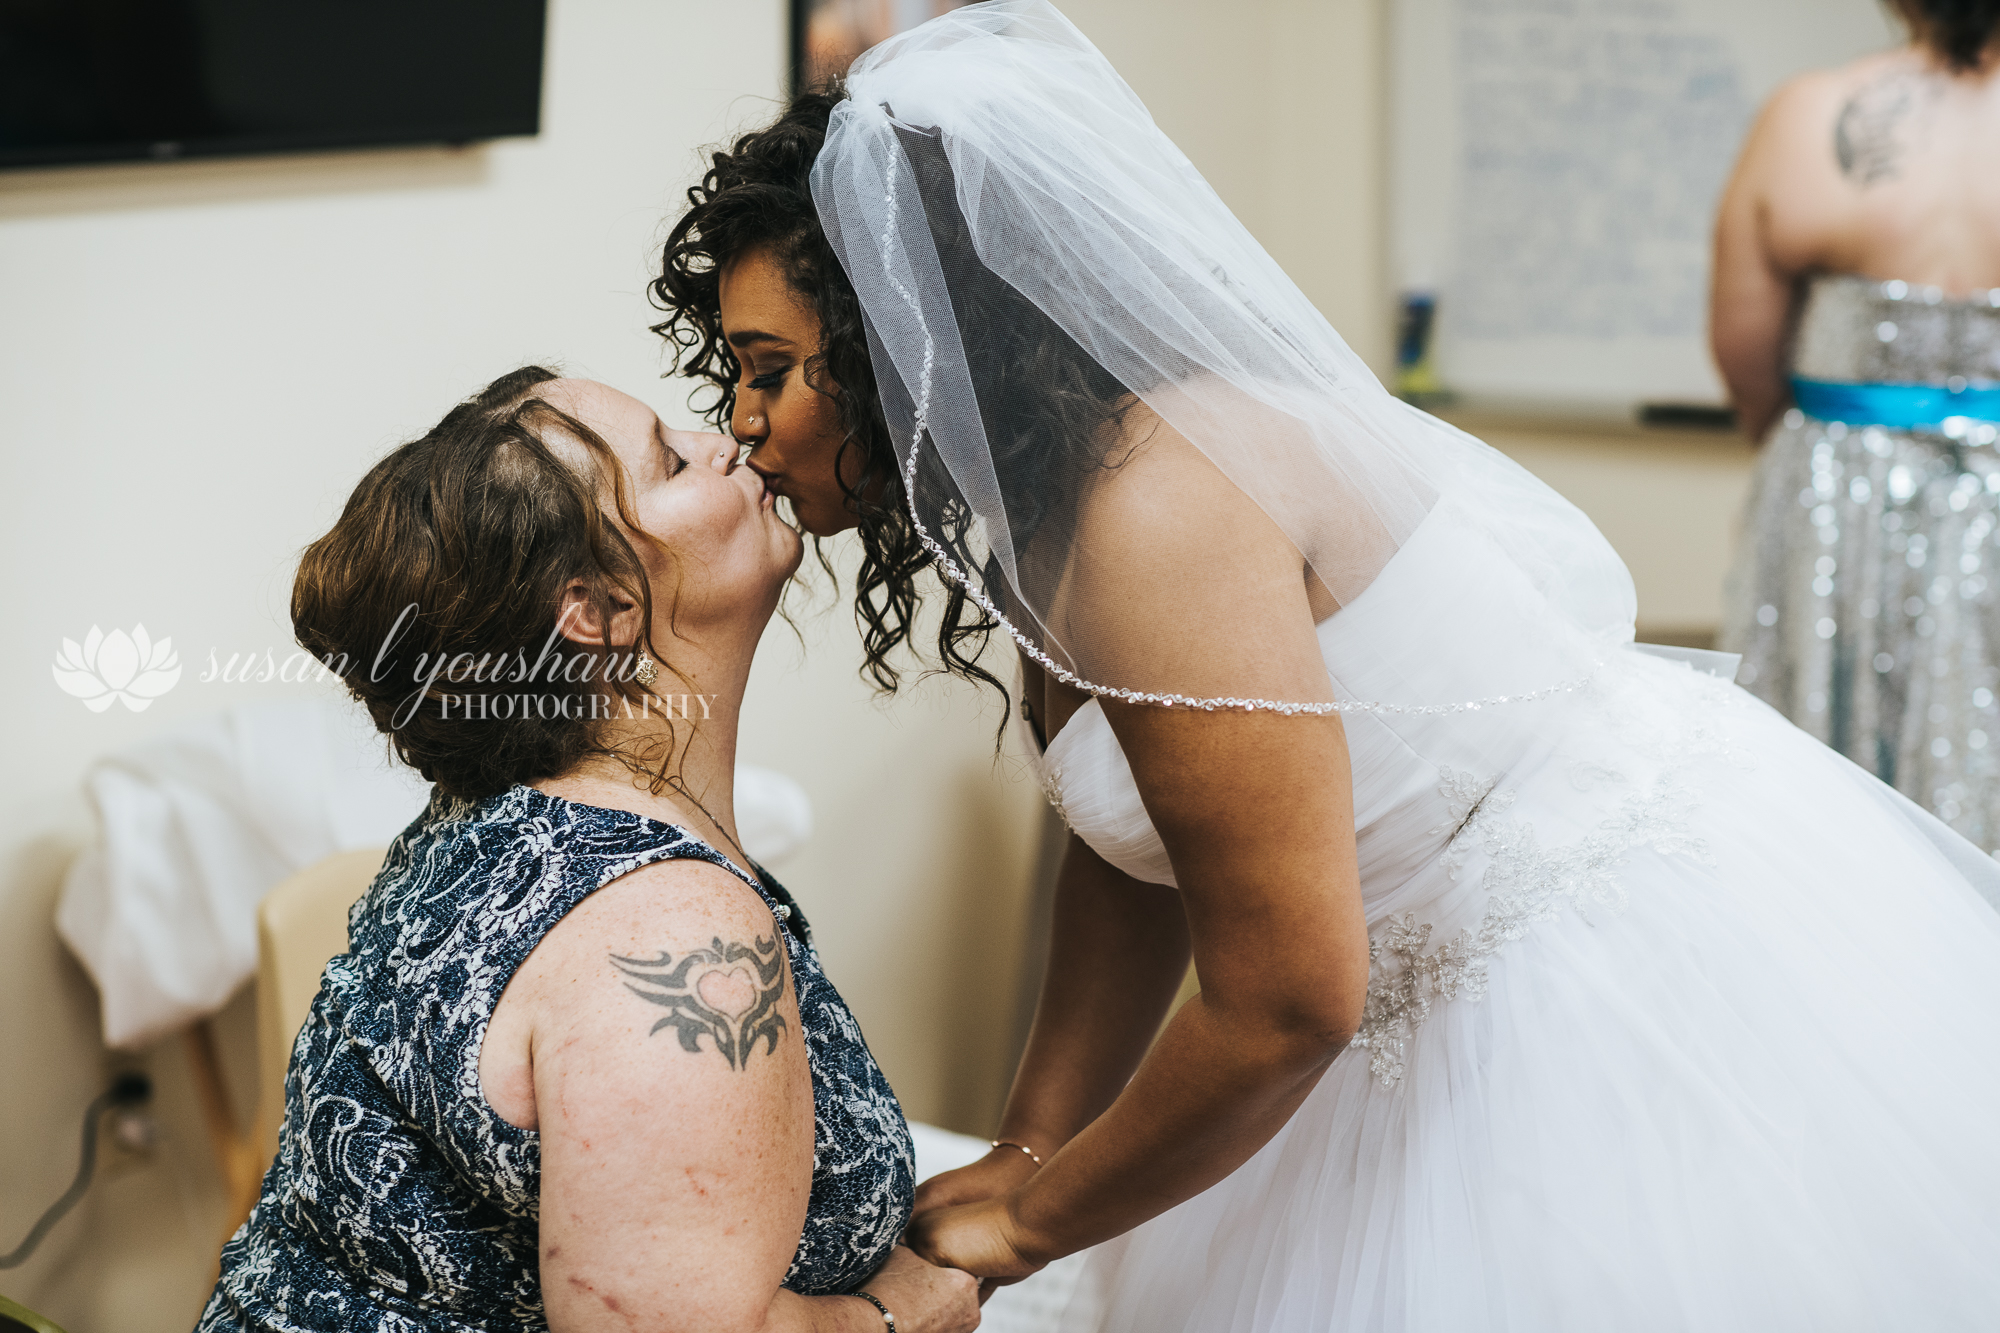 Katelyn and Wes Wedding Photos 07-13-2019 SLY Photography-13.jpg